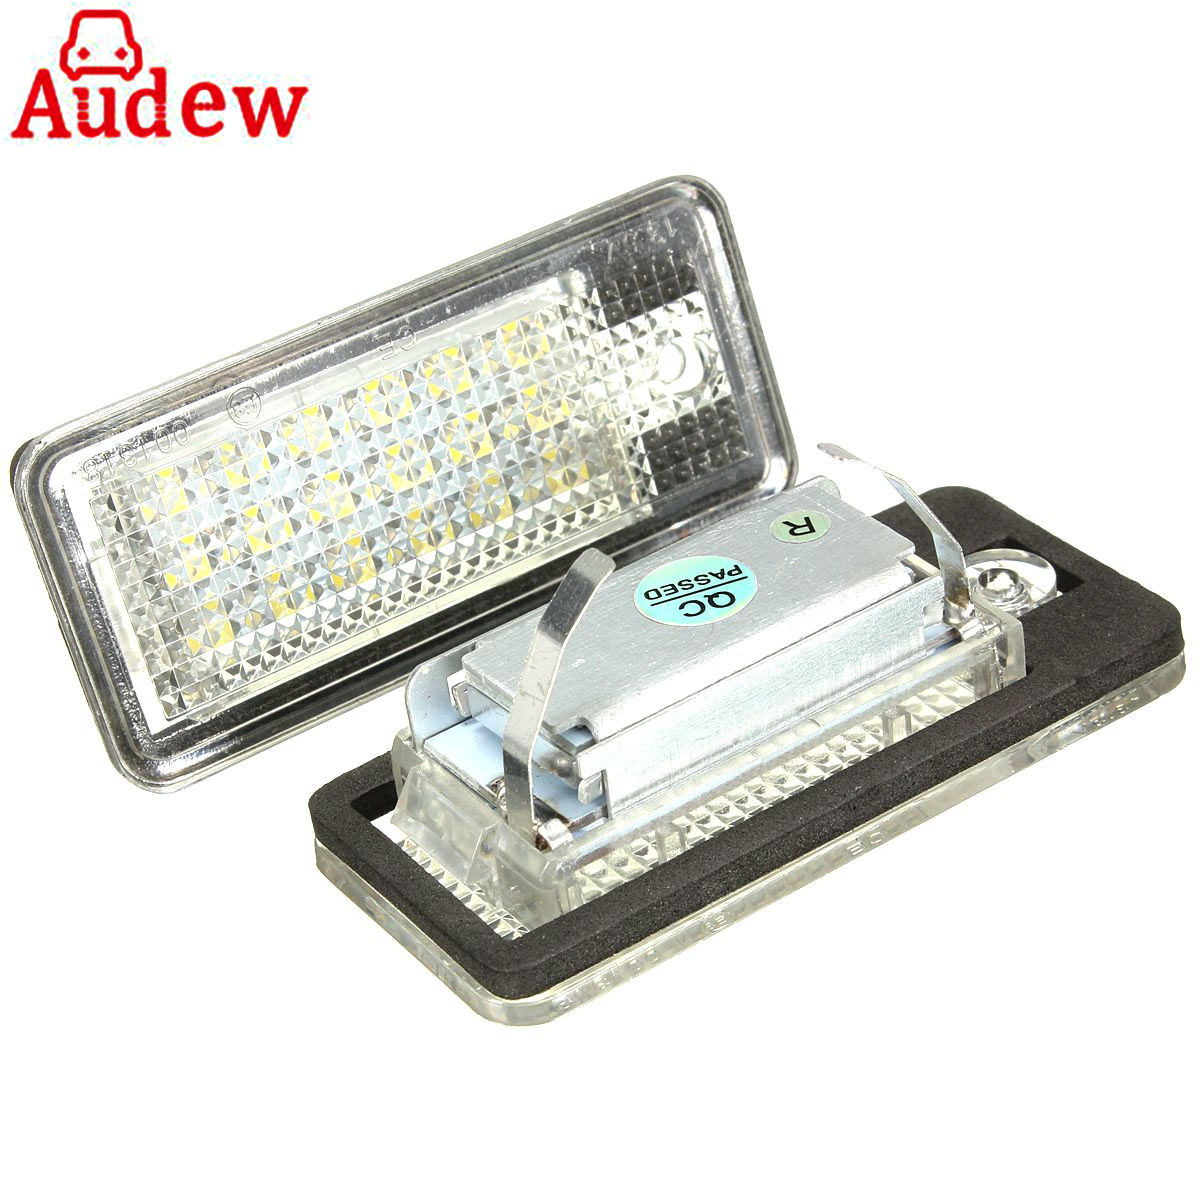 2Pcs Car Error Free 18 LED License Number Plate Light White Lamp For Audi A3 S3 A4 S4 B6 B7 A6 S6 A8 Q7 hot 2pcs error free 3528 smd 18 led car led license number plate light lamp white for bmw e46 4d sedan 5d wagon 12v